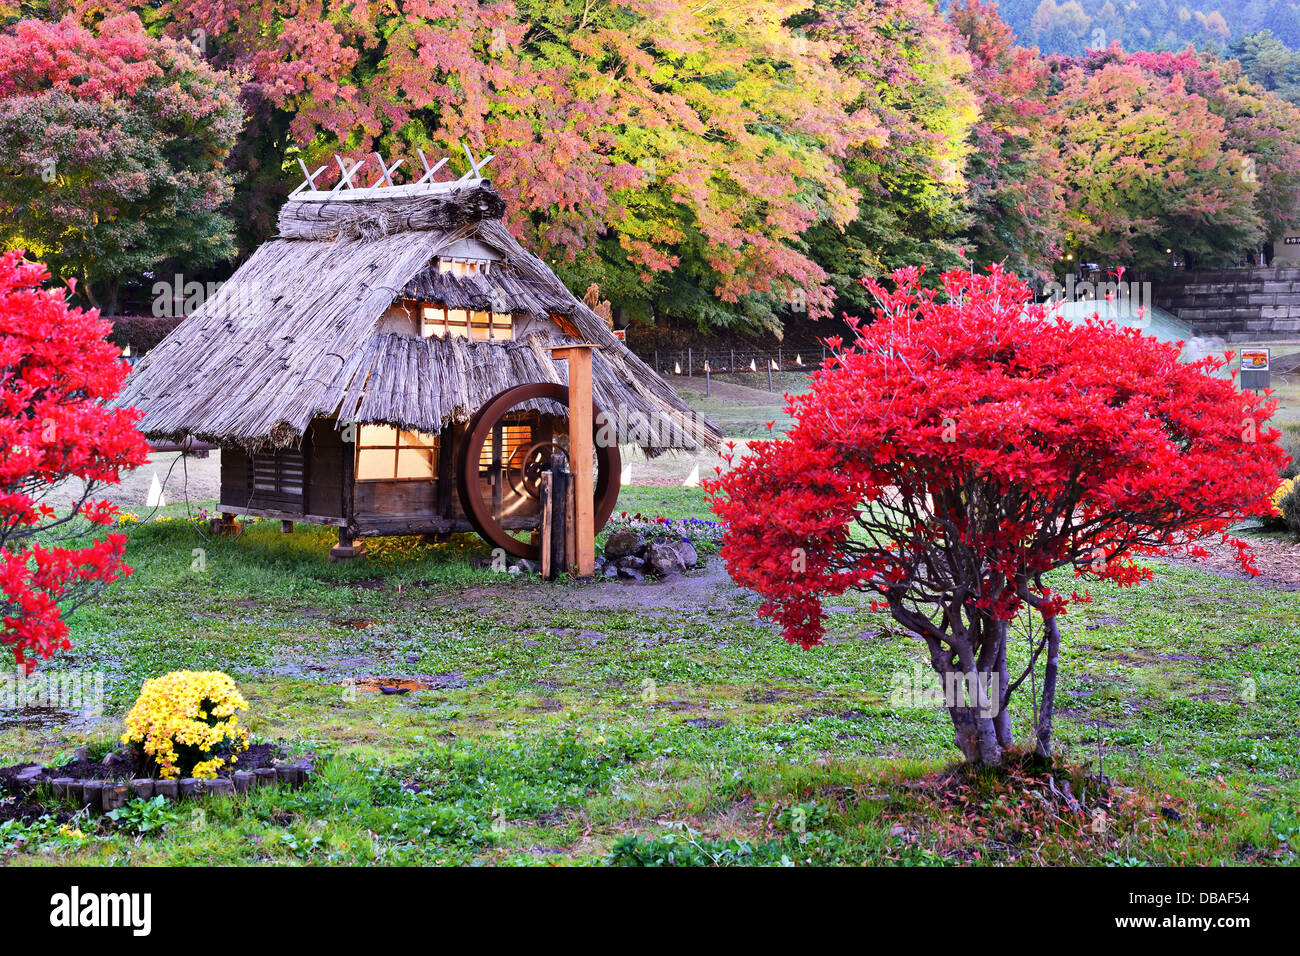 Huts and fall foliage in Kawaguchi, Japan. - Stock Image